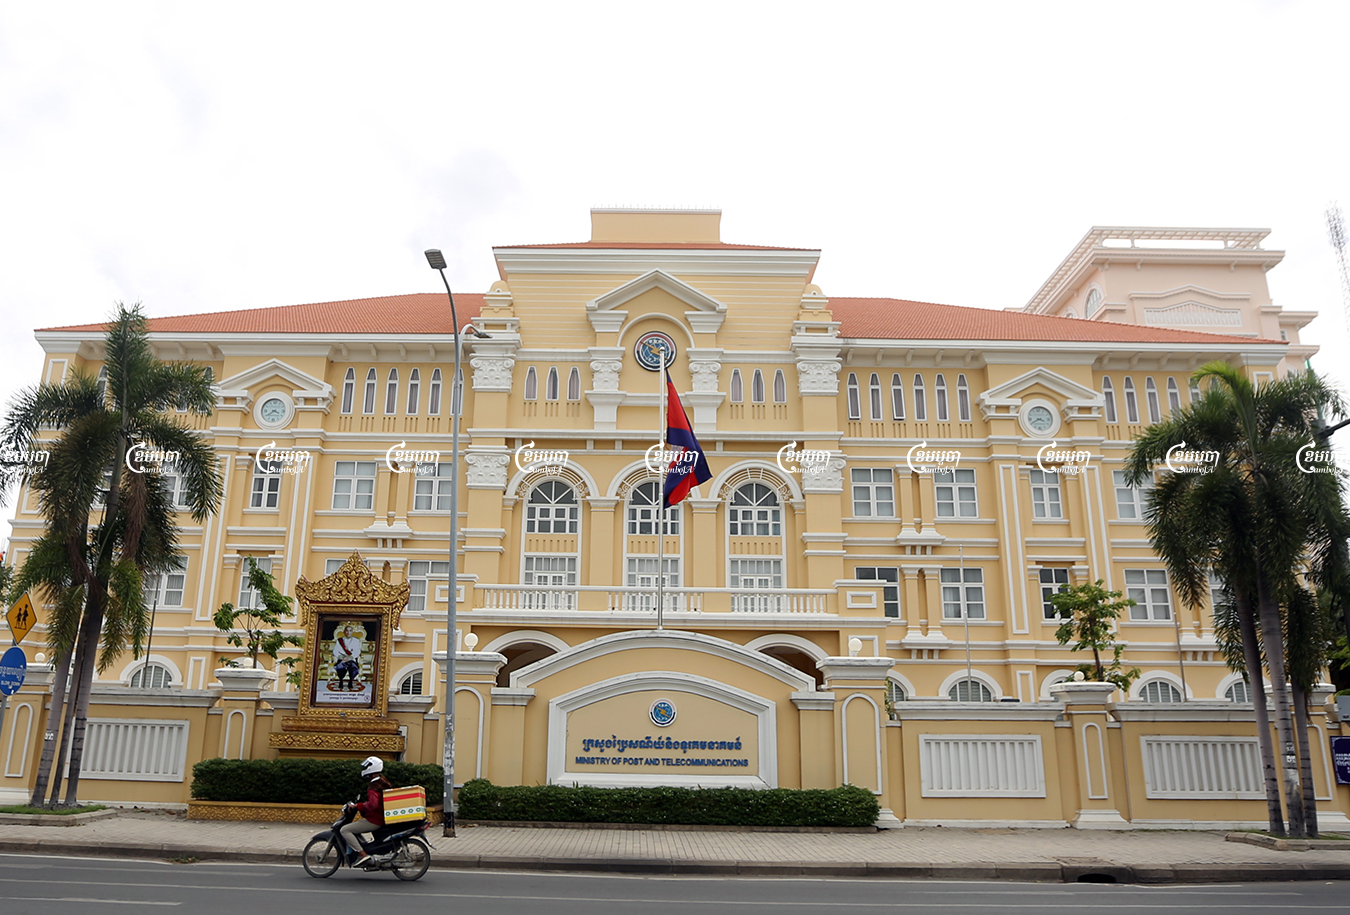 A person drives past the Ministry of Post and Telecommunications on Monivong Blvd, in Phnom Penh, June 7, 2021. CamboJA/ Pring Samrang